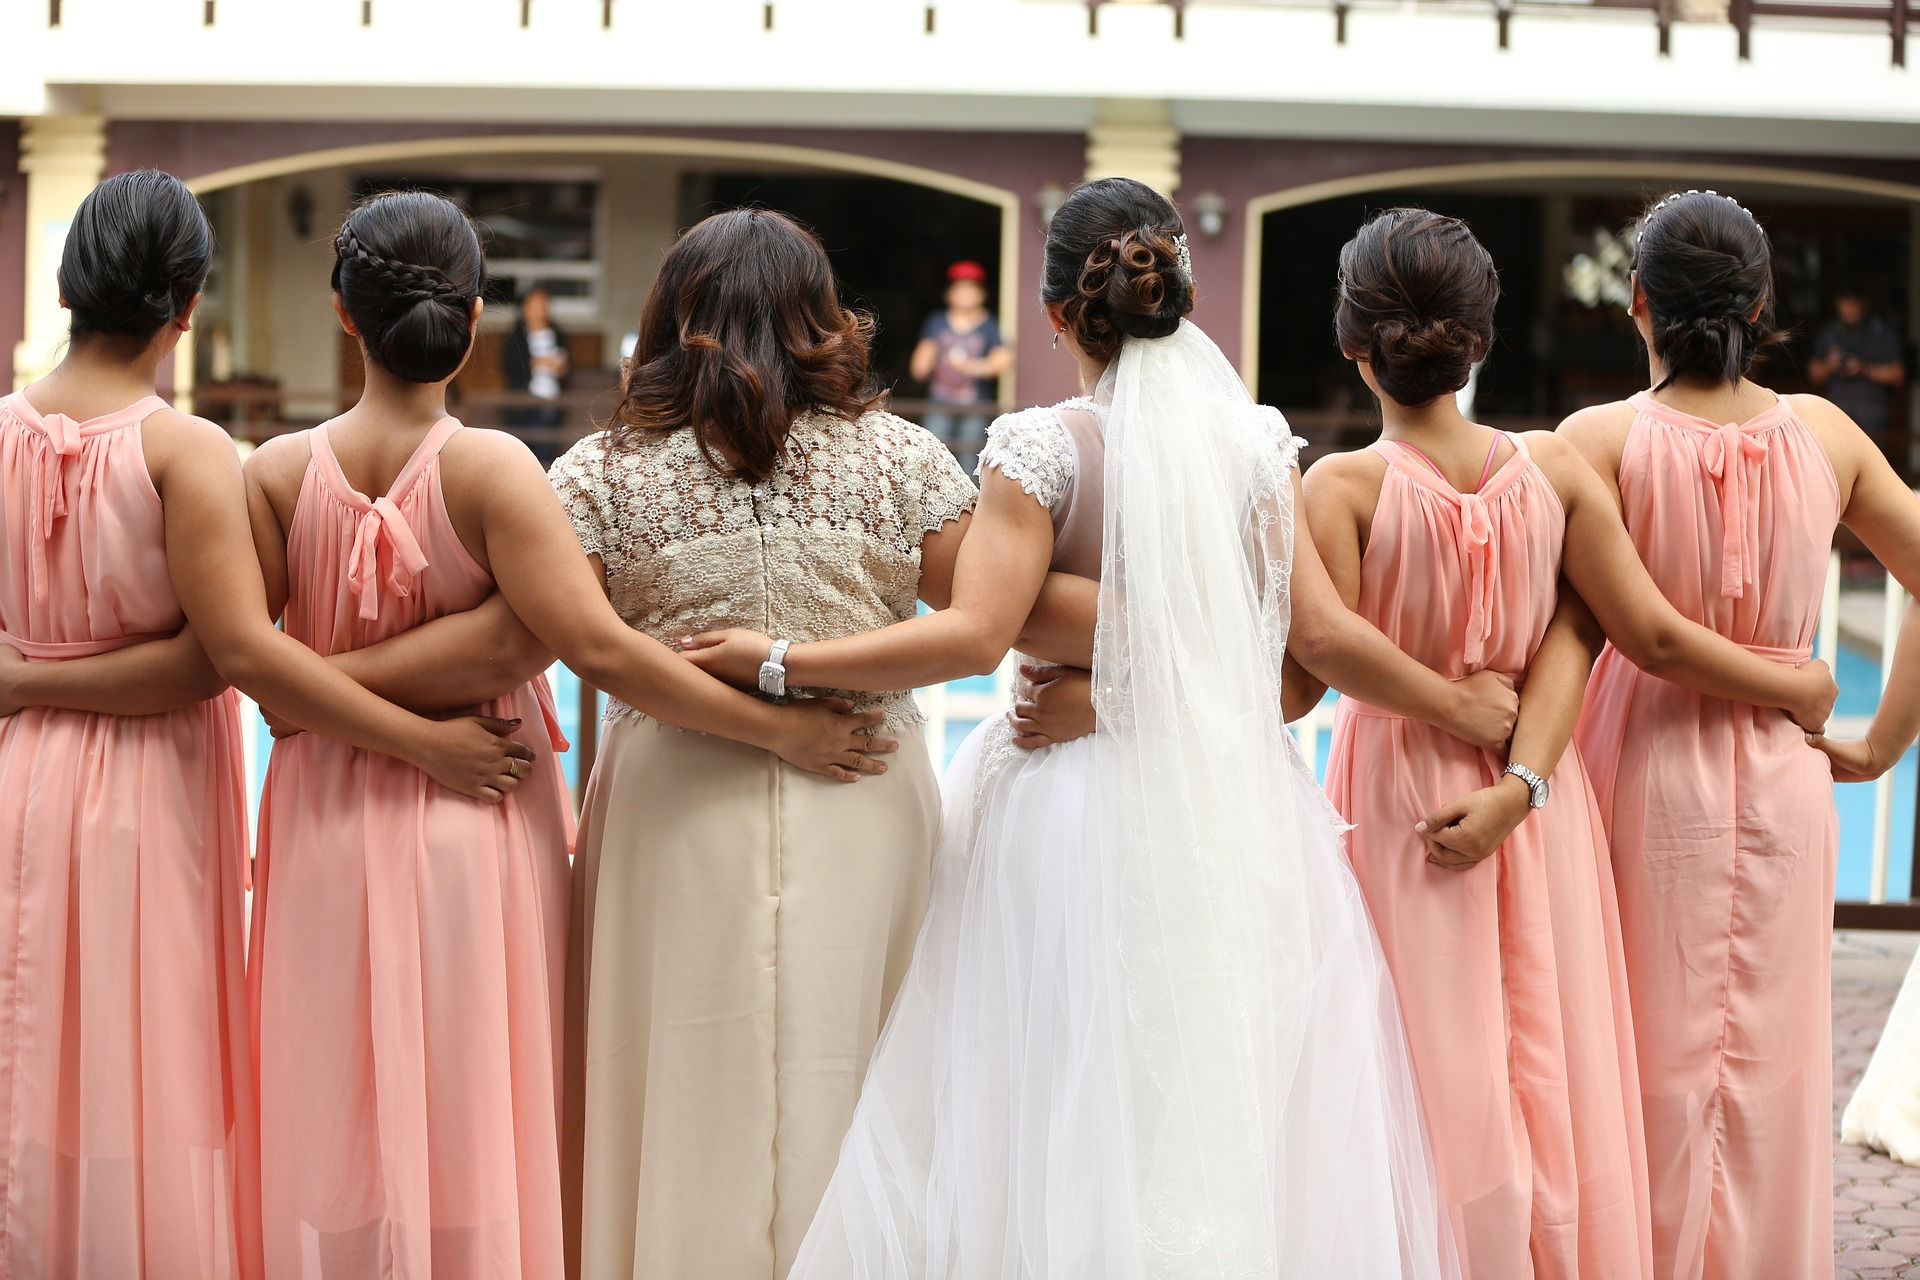 10 Bridesmaid Gift Ideas For Your Besties